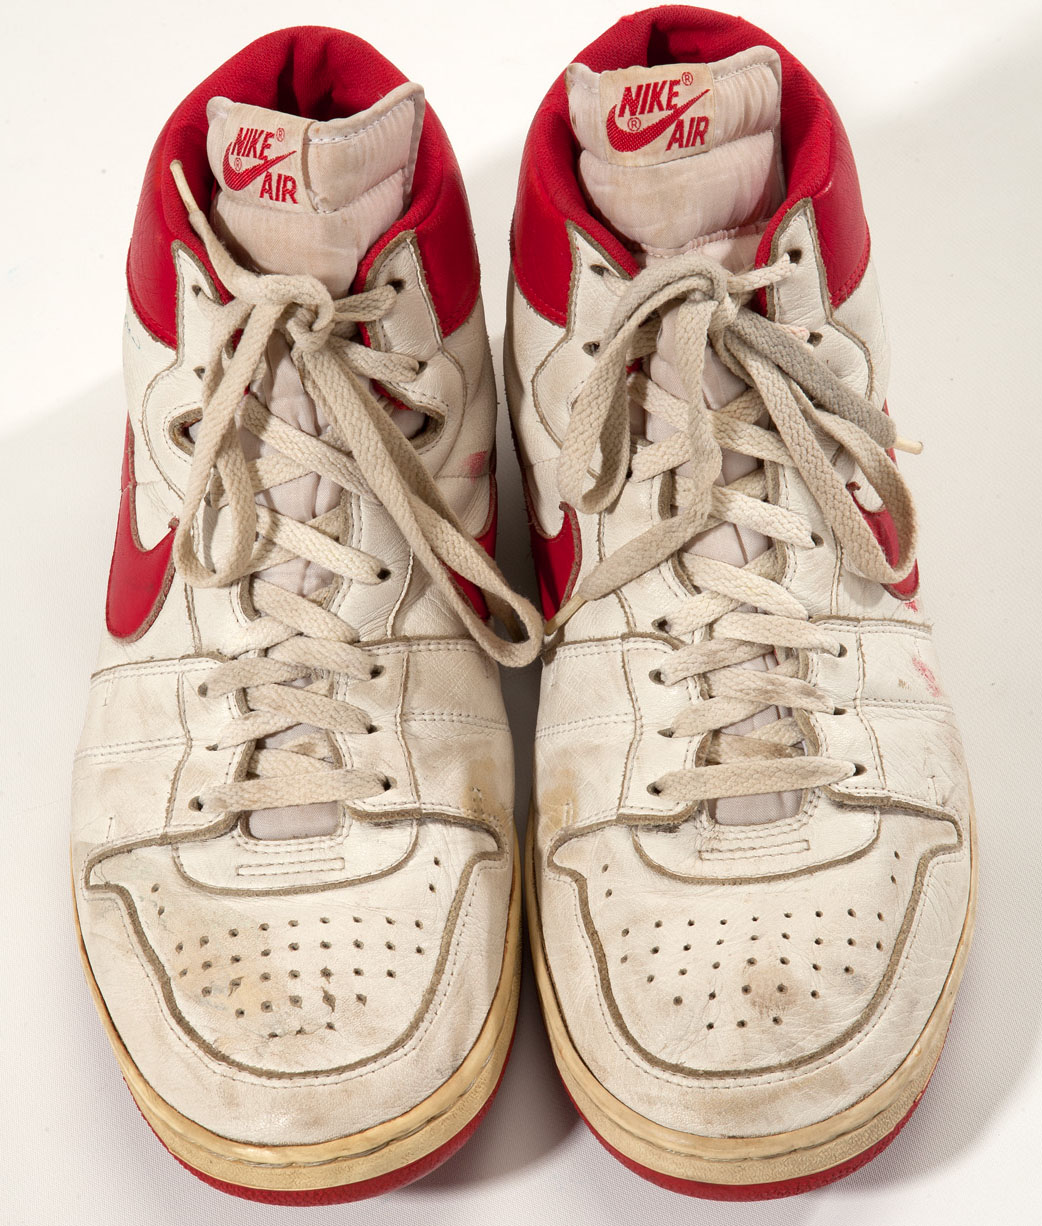 Game Worn Nike Air Ship Sneakers Sell